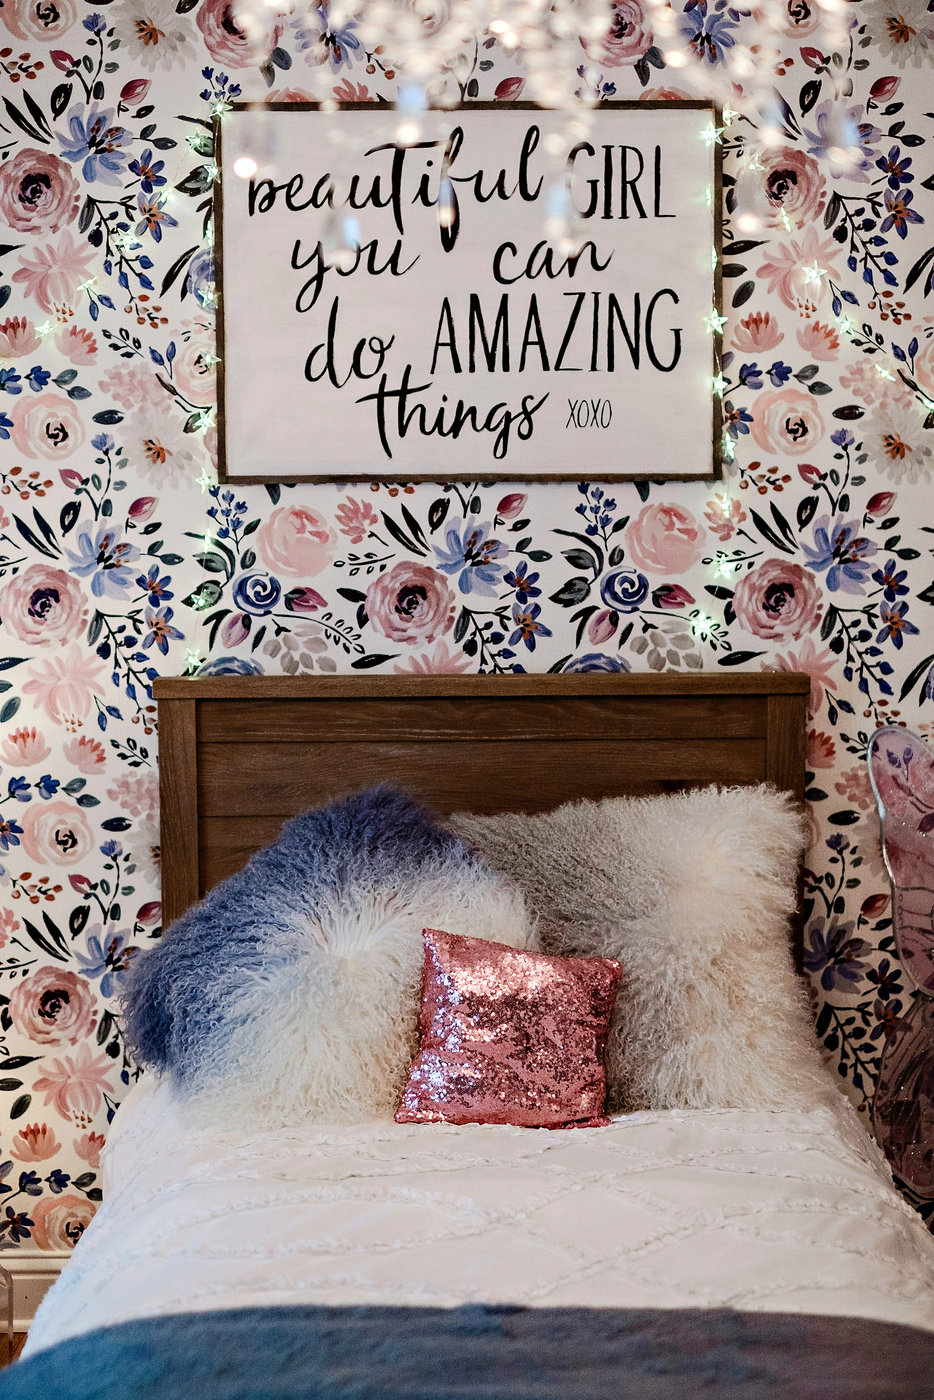 Pottery Barn Kids | Meg Basinger | Little Girl Room Decor featured by popular Atlanta life and style blogger Happily Hughes